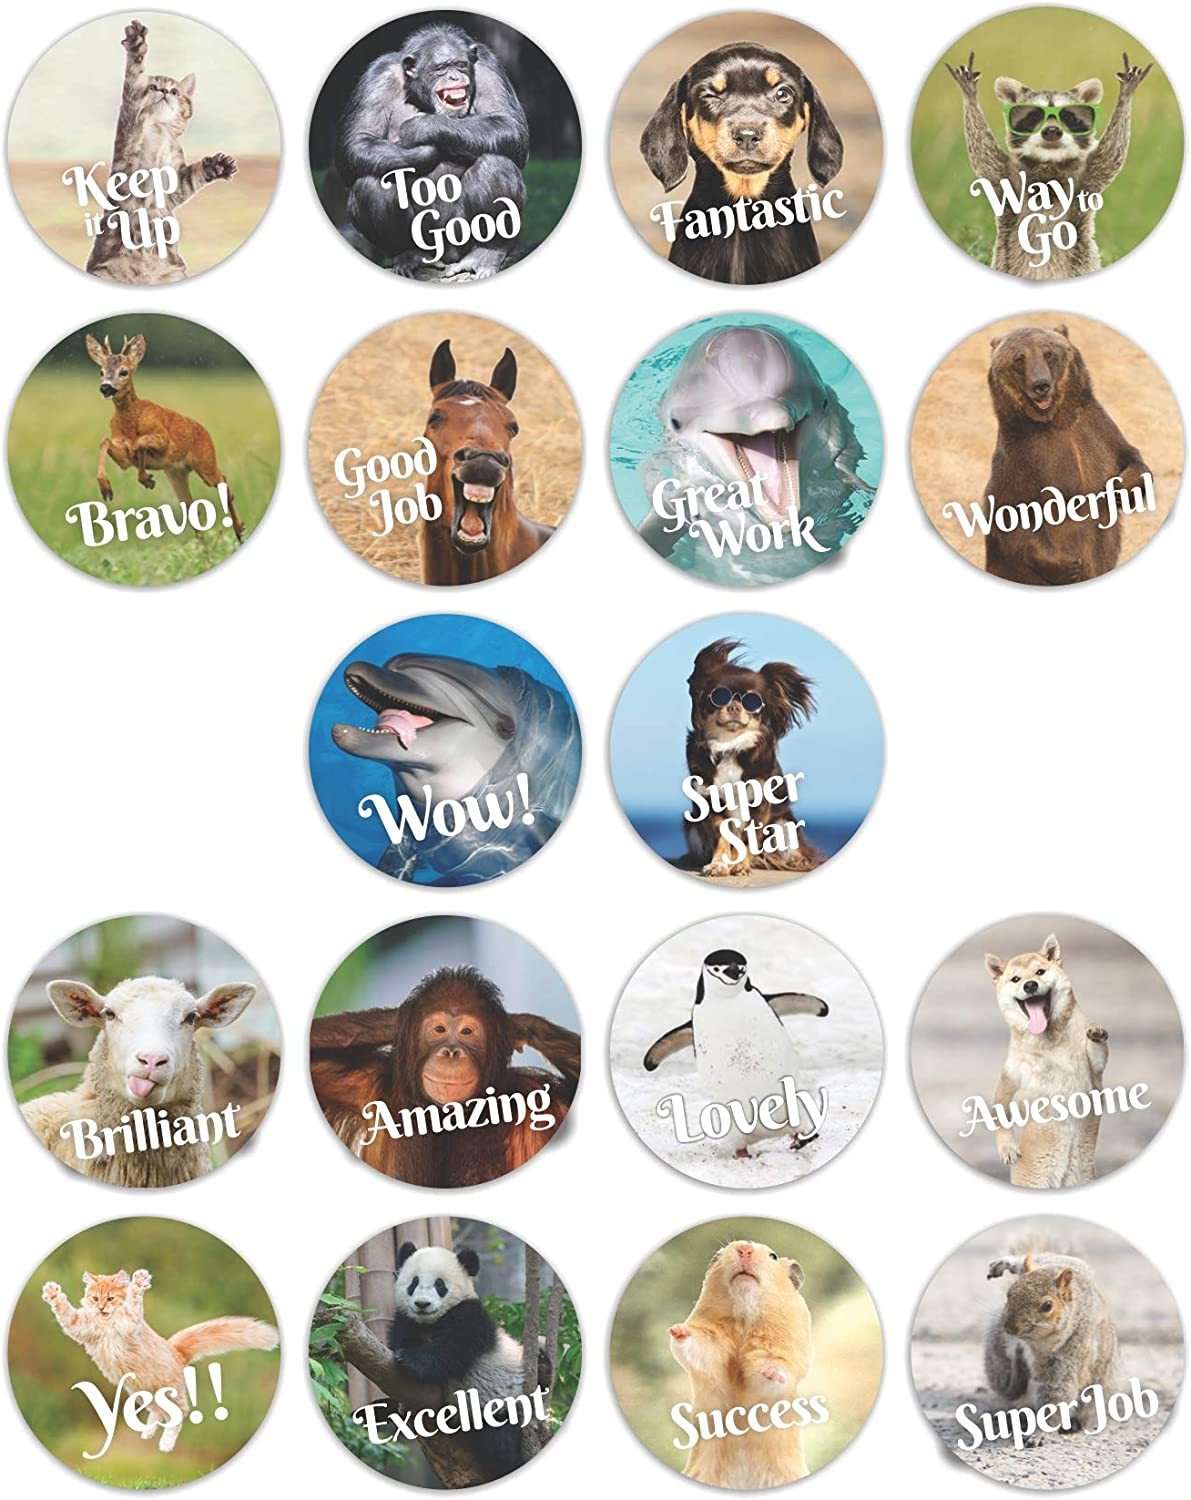 Reward and Motivational Stickers   360 Labels in Sheets   1 Inch Round Size   18 Different Fun Animal Meme Theme Designs   Recommended for All Ages and Classes